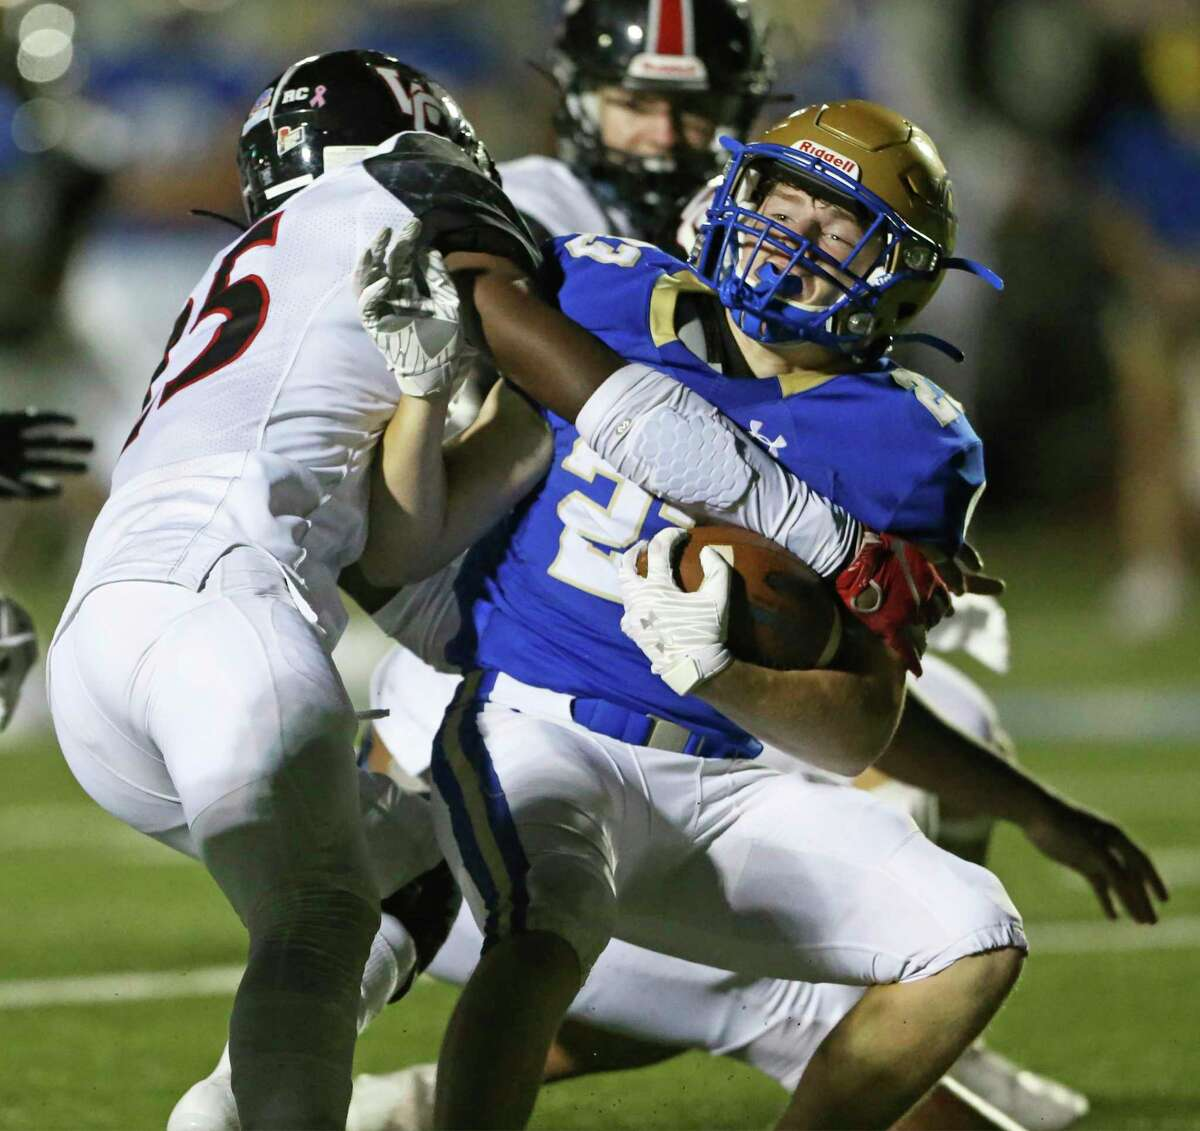 Mule running back George Flesher is brought down hard by Marshall Perez (25) as Alamo Heights hosts Churchill at Commalander Stadium on Oct. 1, 2020.